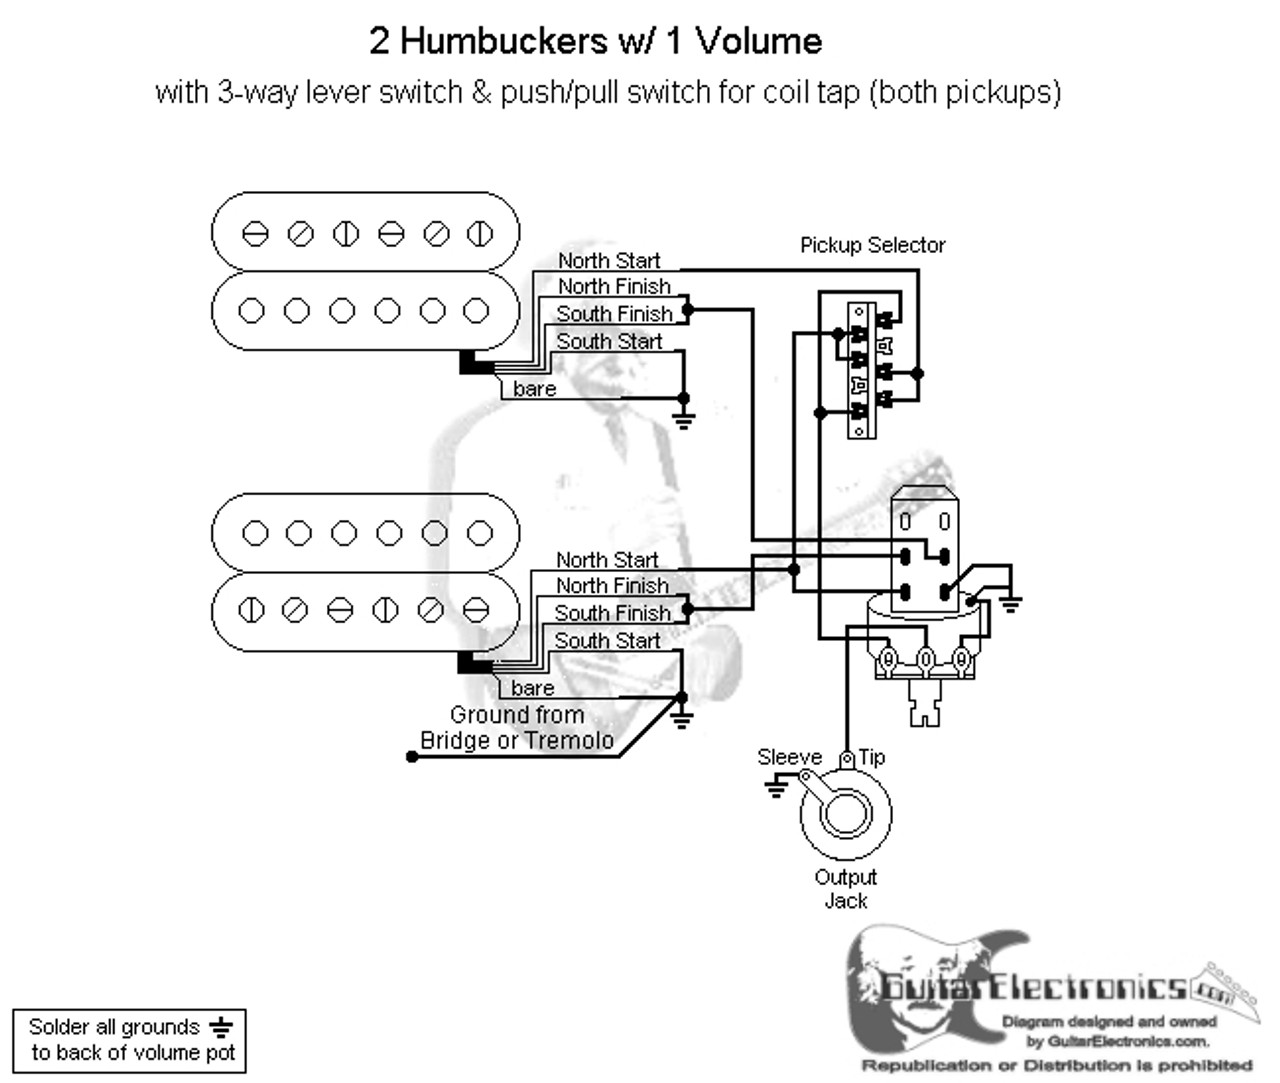 medium resolution of pushpull coil tap wiring diagram 2 humbuckers 3 way lever switch 1